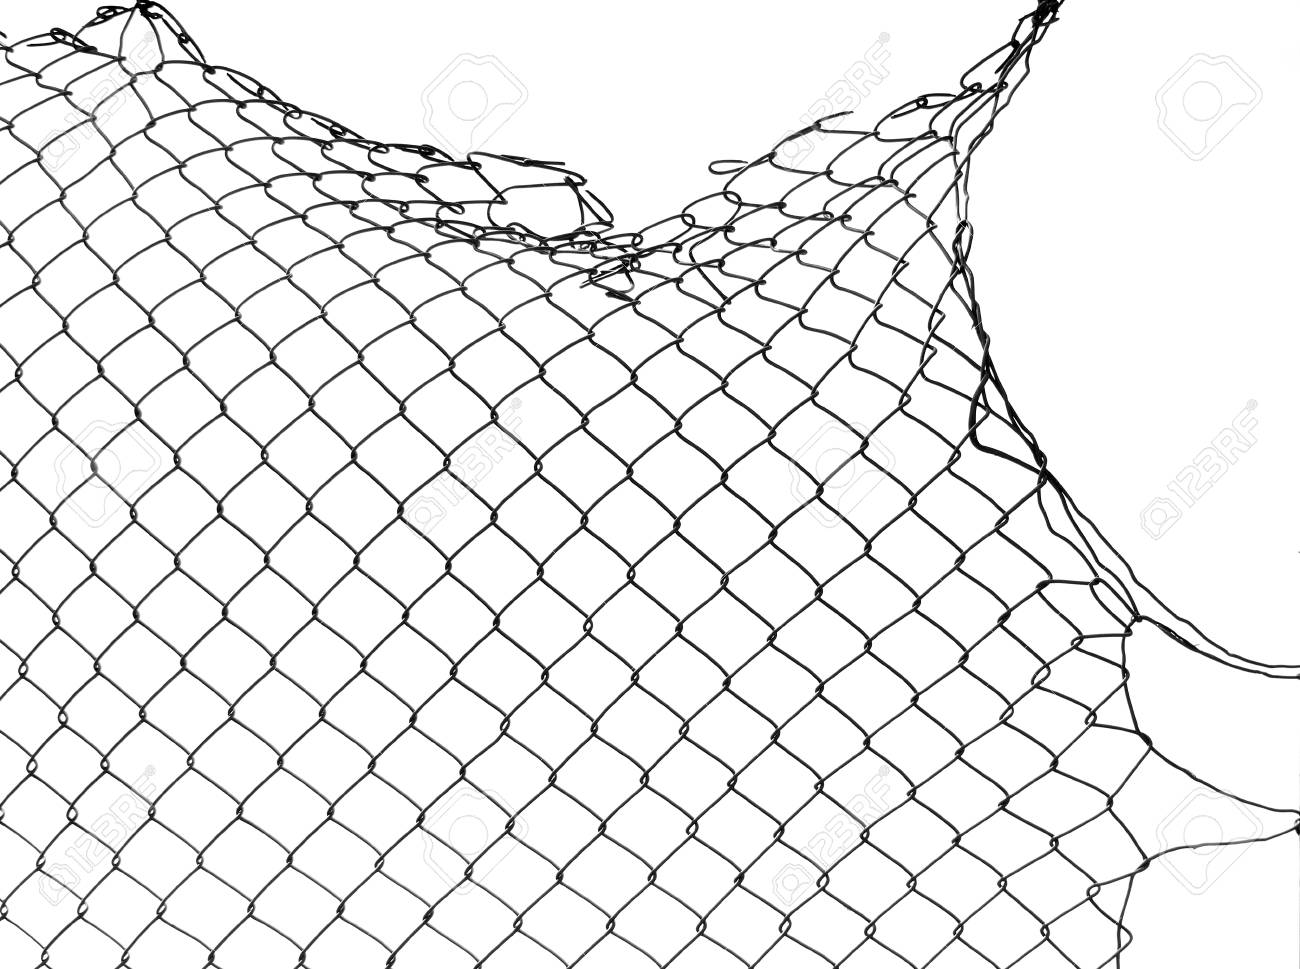 Damage wire mesh stock photo picture and royalty free image image